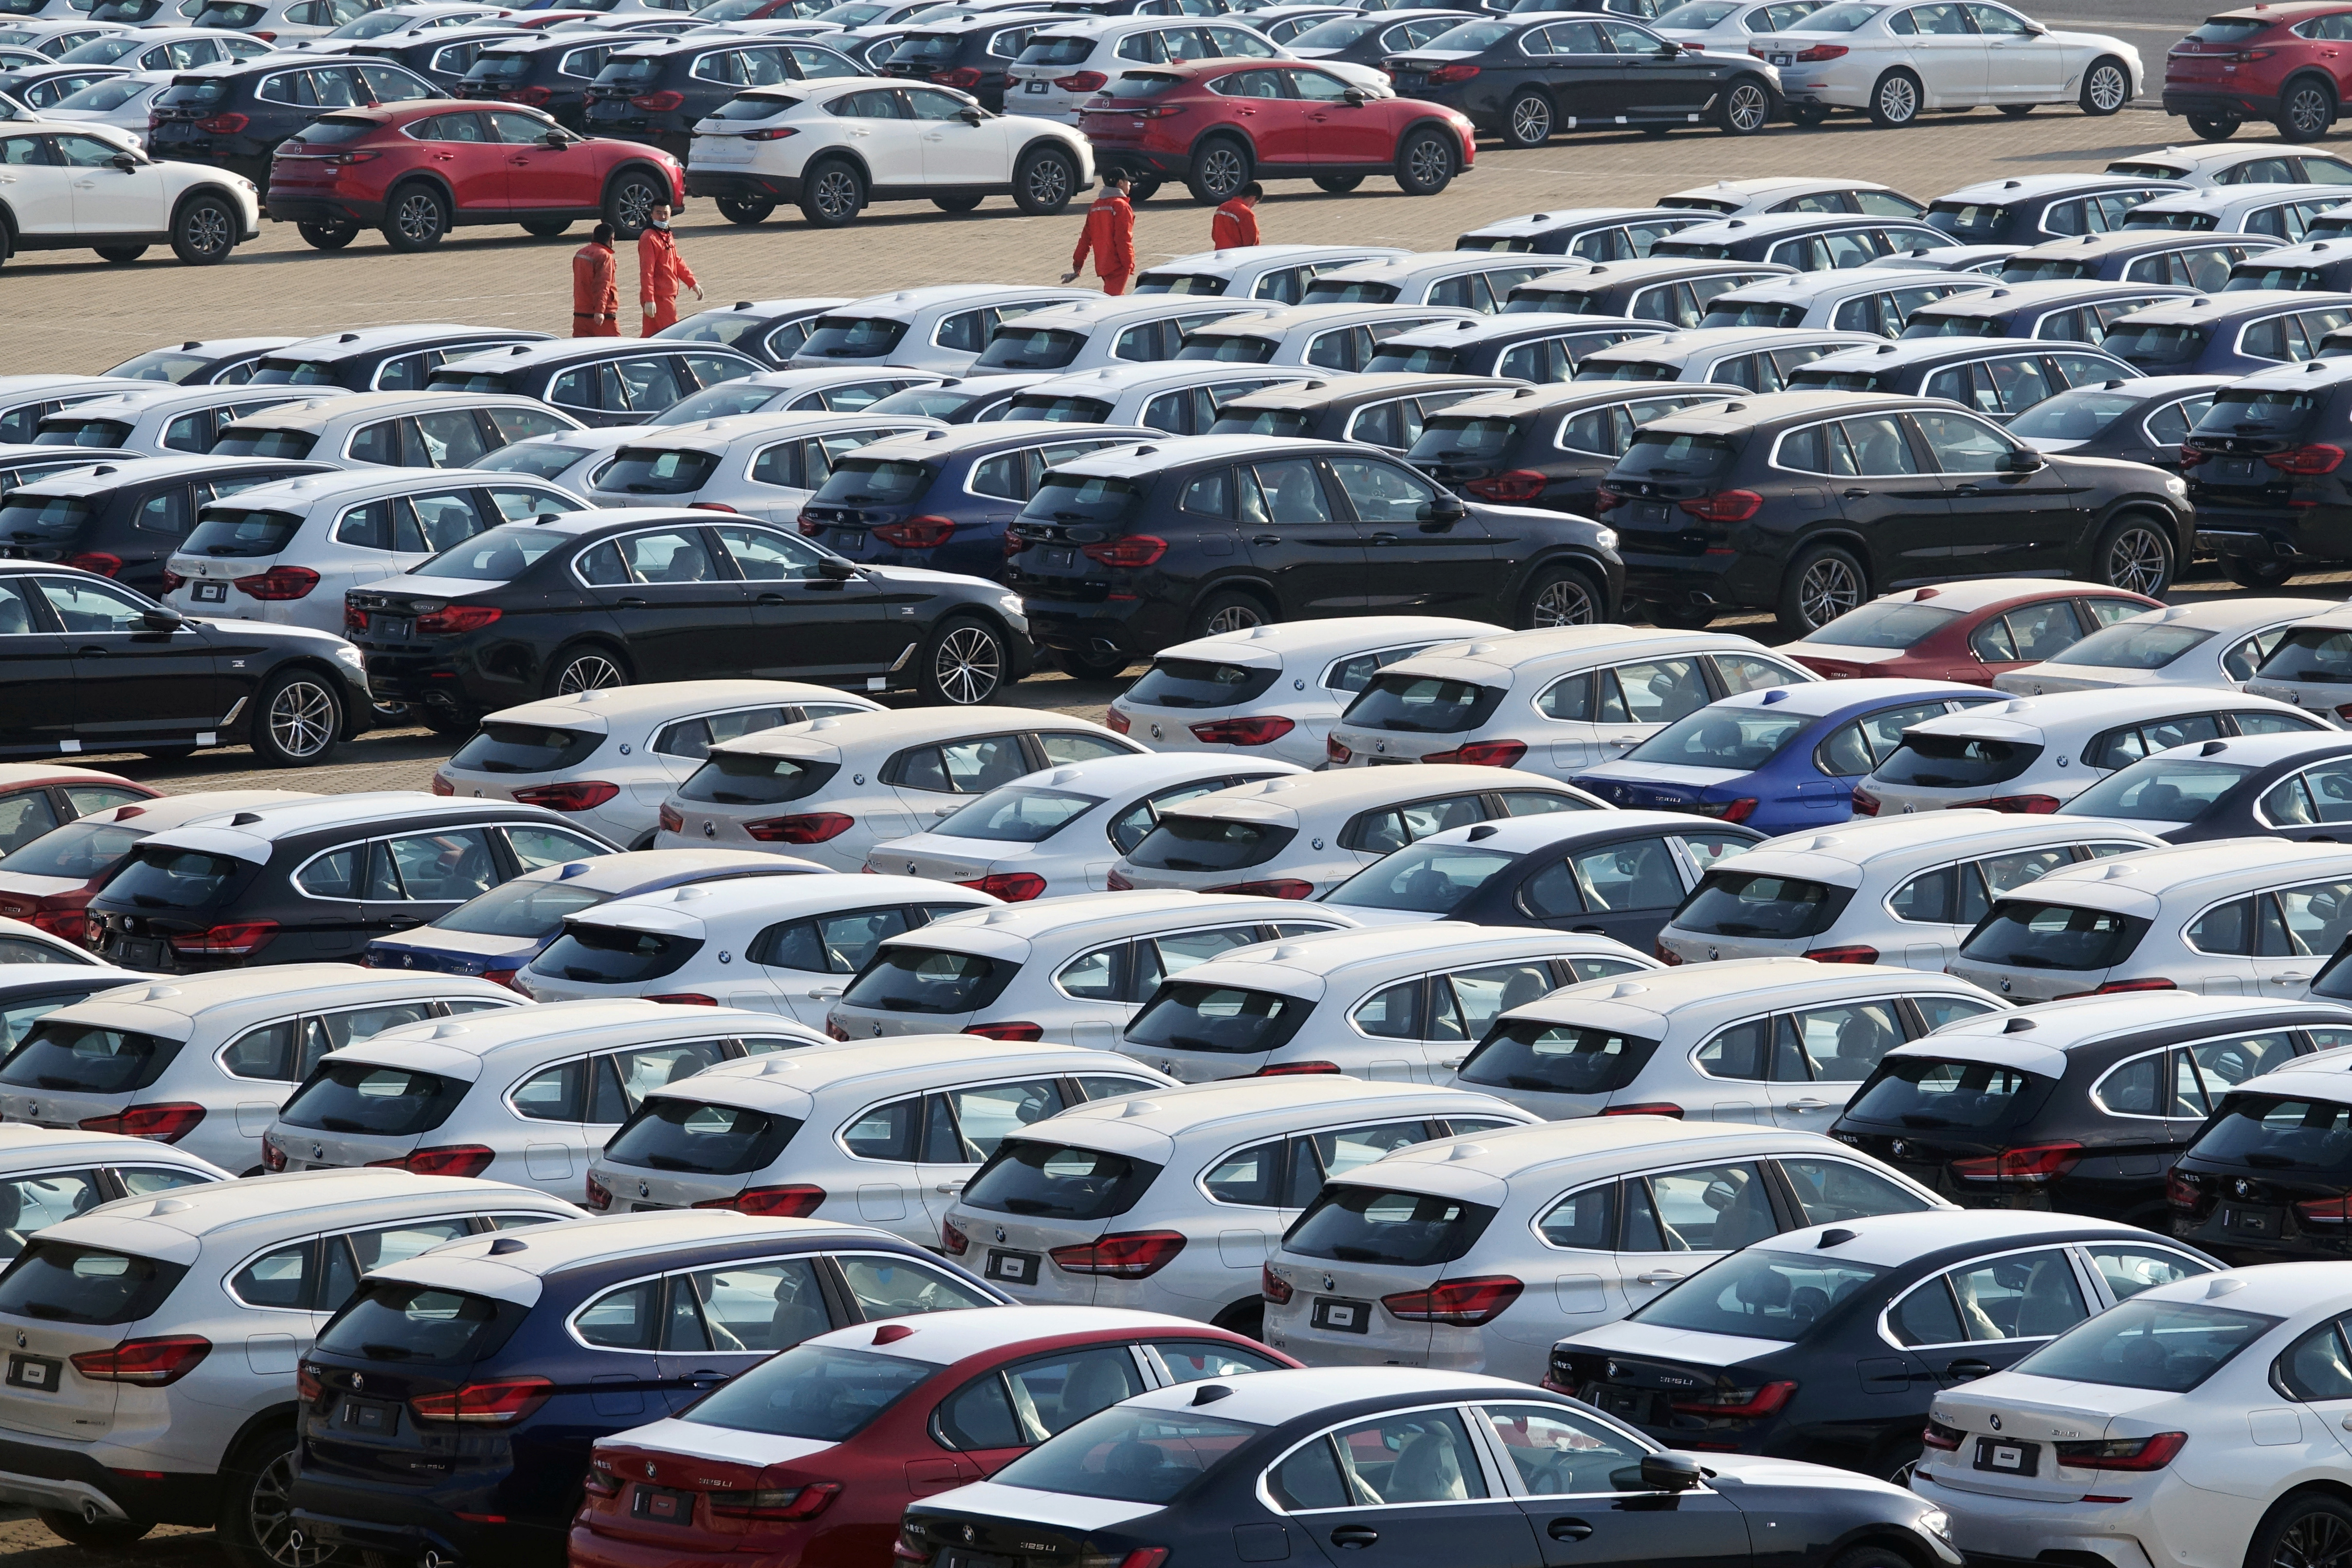 Newly manufactured cars are seen at a port in Dalian, Liaoning province, China April 10, 2020. China Daily via REUTERS/Files